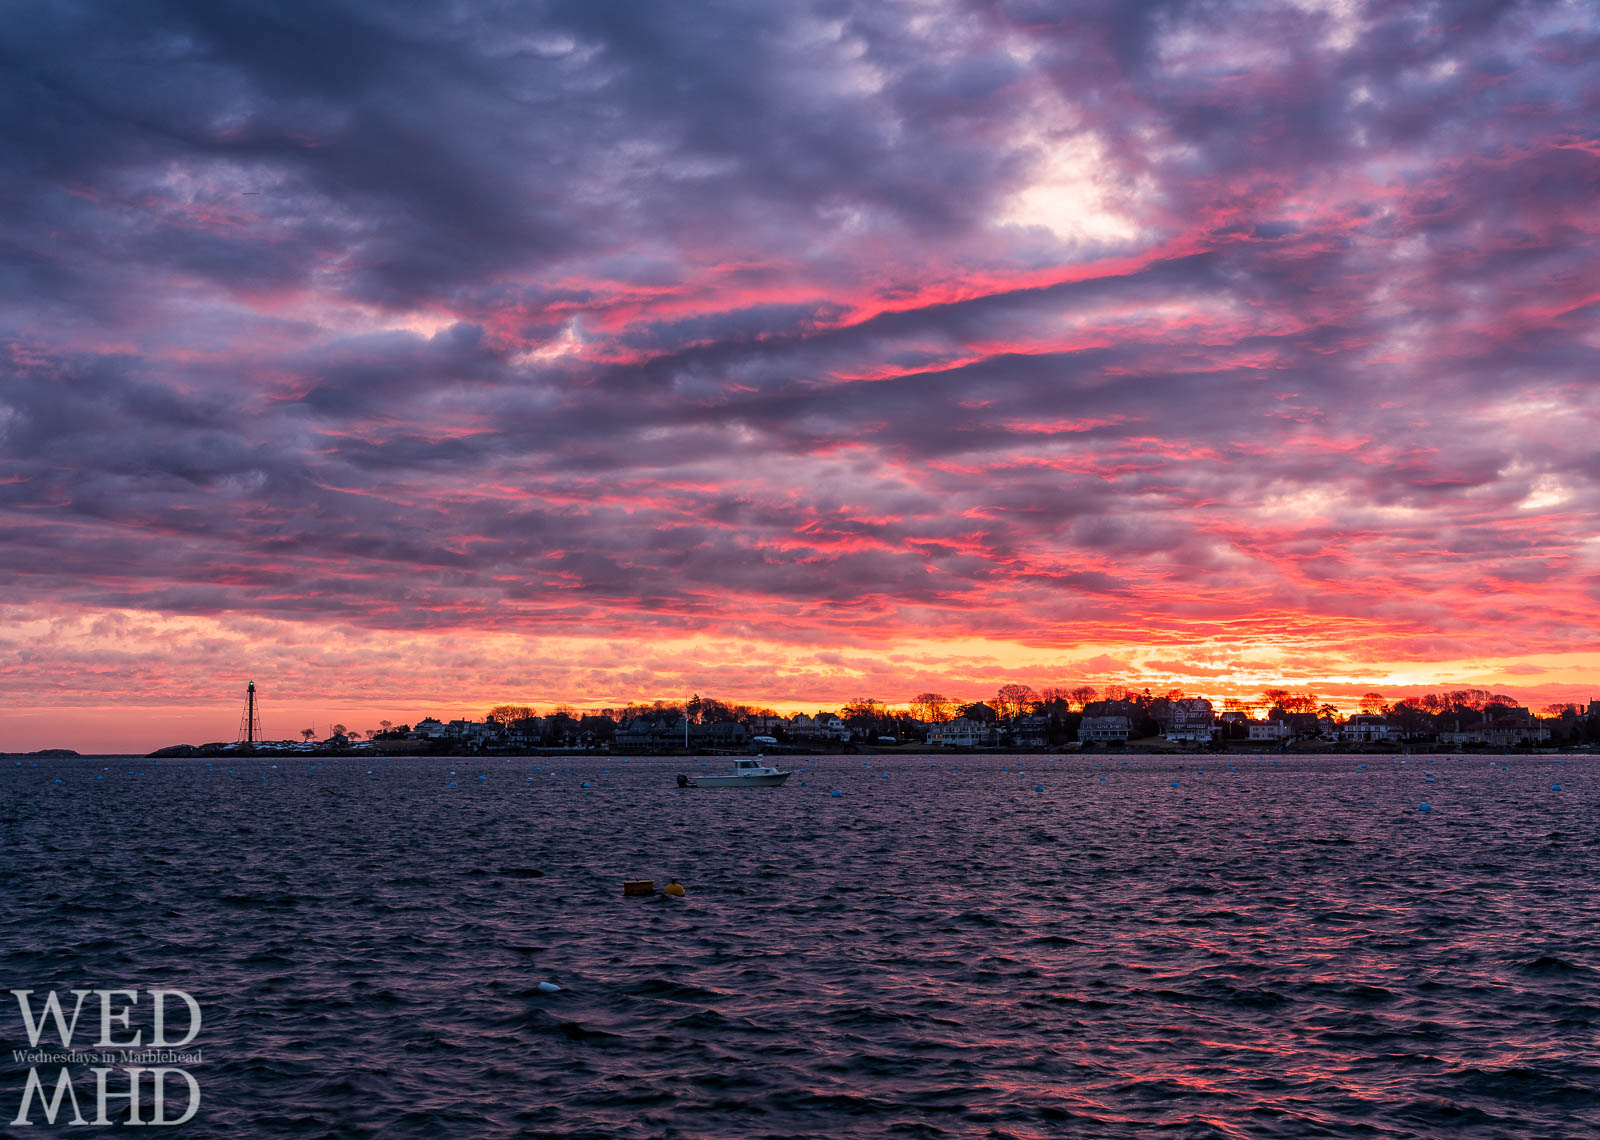 A brilliant sunrise paints the sky in pink and orange over a purple harbor with Marblehead Light's green beacon shining bright